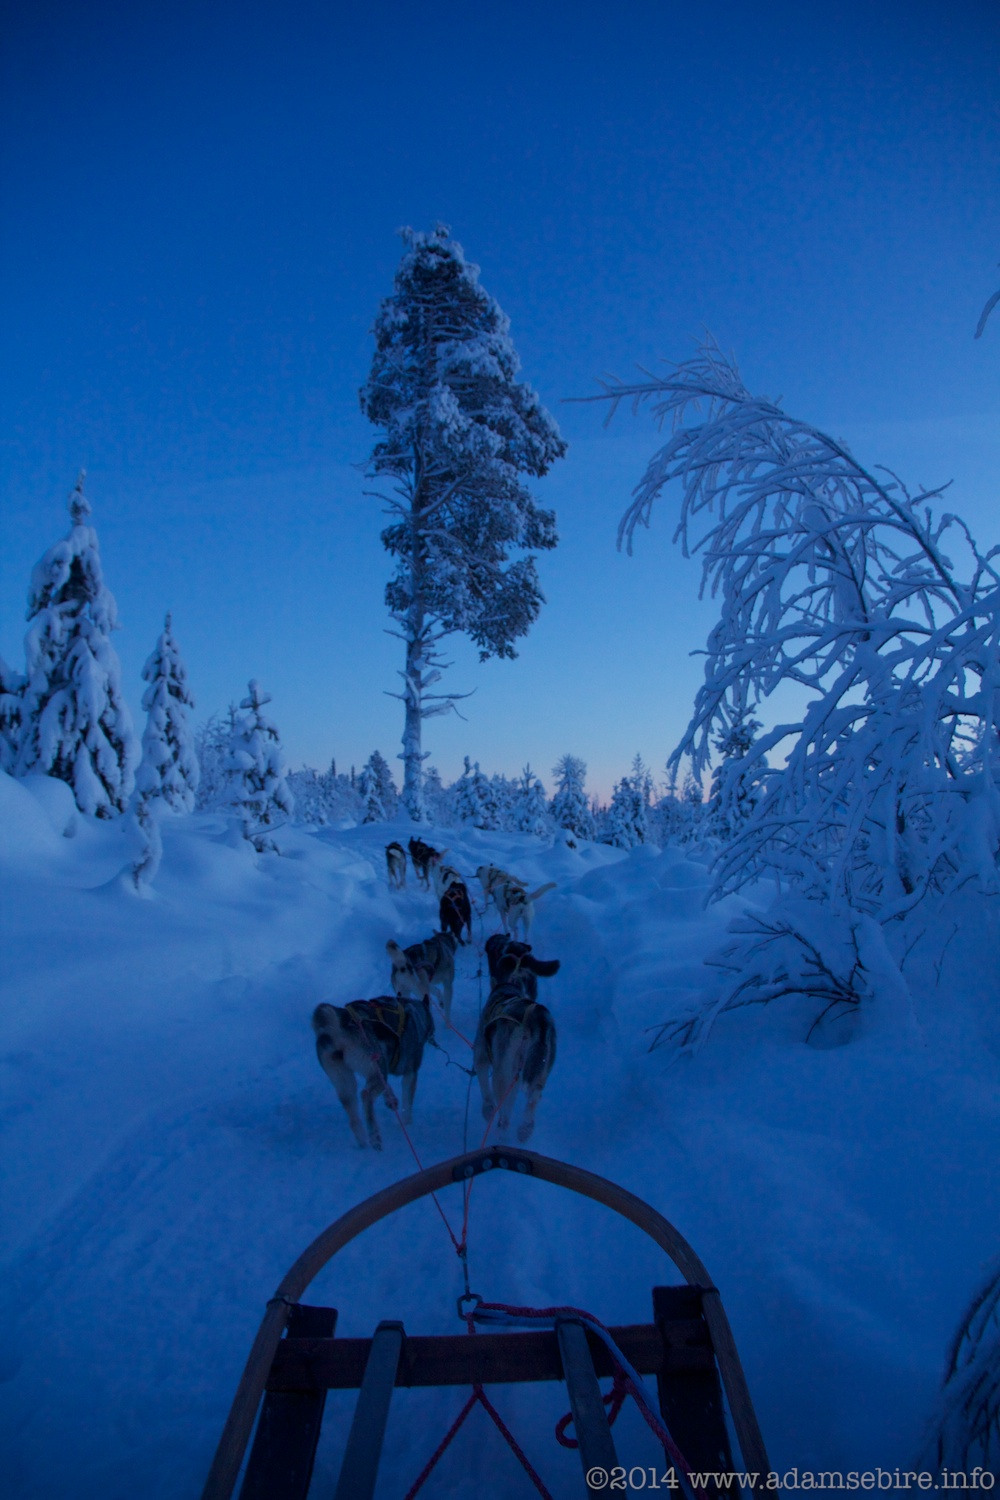 Dog Sledding, Årrenjarka, Swedish Lapland